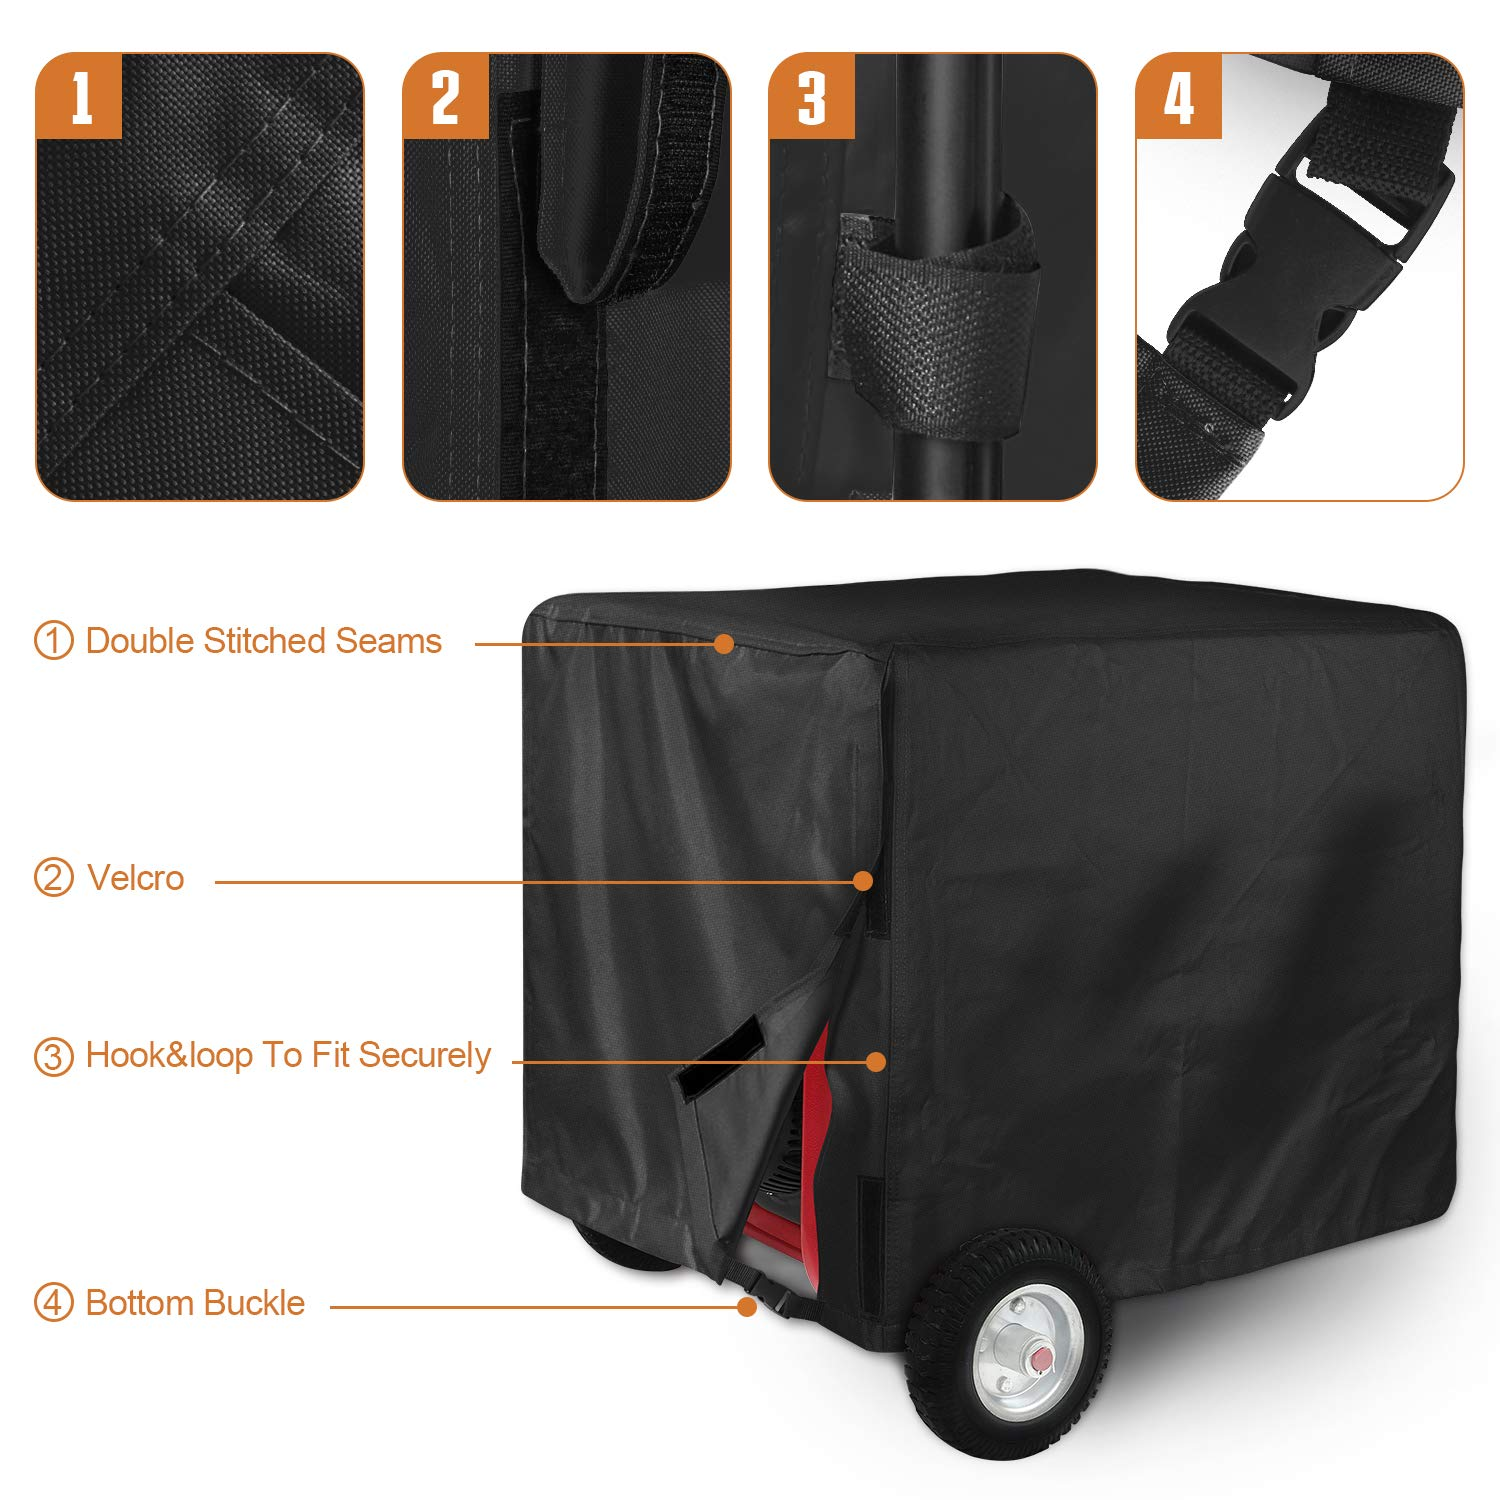 Leader Accessories Durable Universal Waterproof Generator Cover (31'' Lx 29'' Wx 28'' H, Black) by Leader Accessories (Image #4)